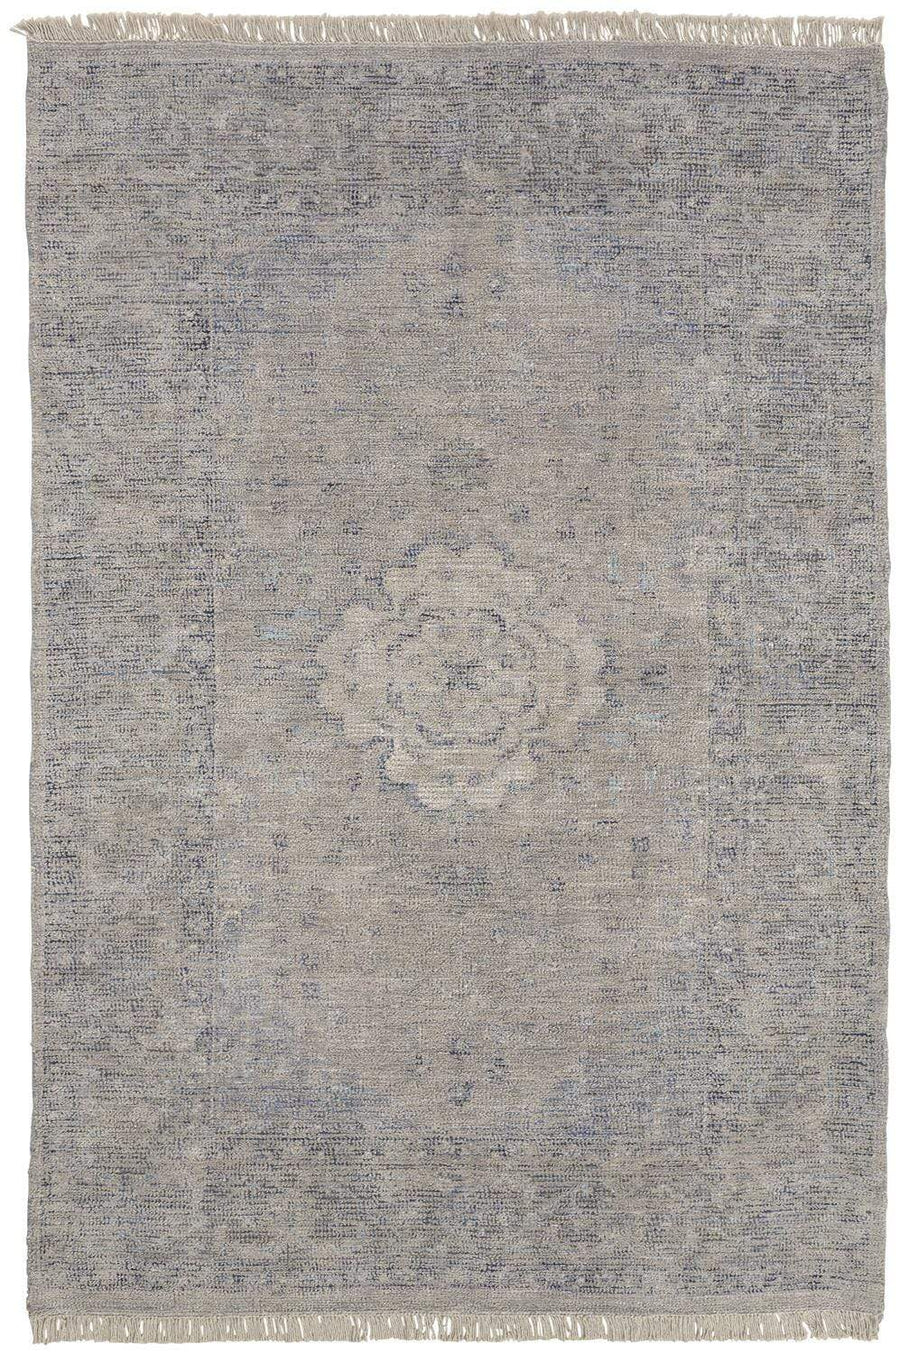 Feizy Home Caldwell Rug - Natural Blu0008108F | Alchemy Fine Home